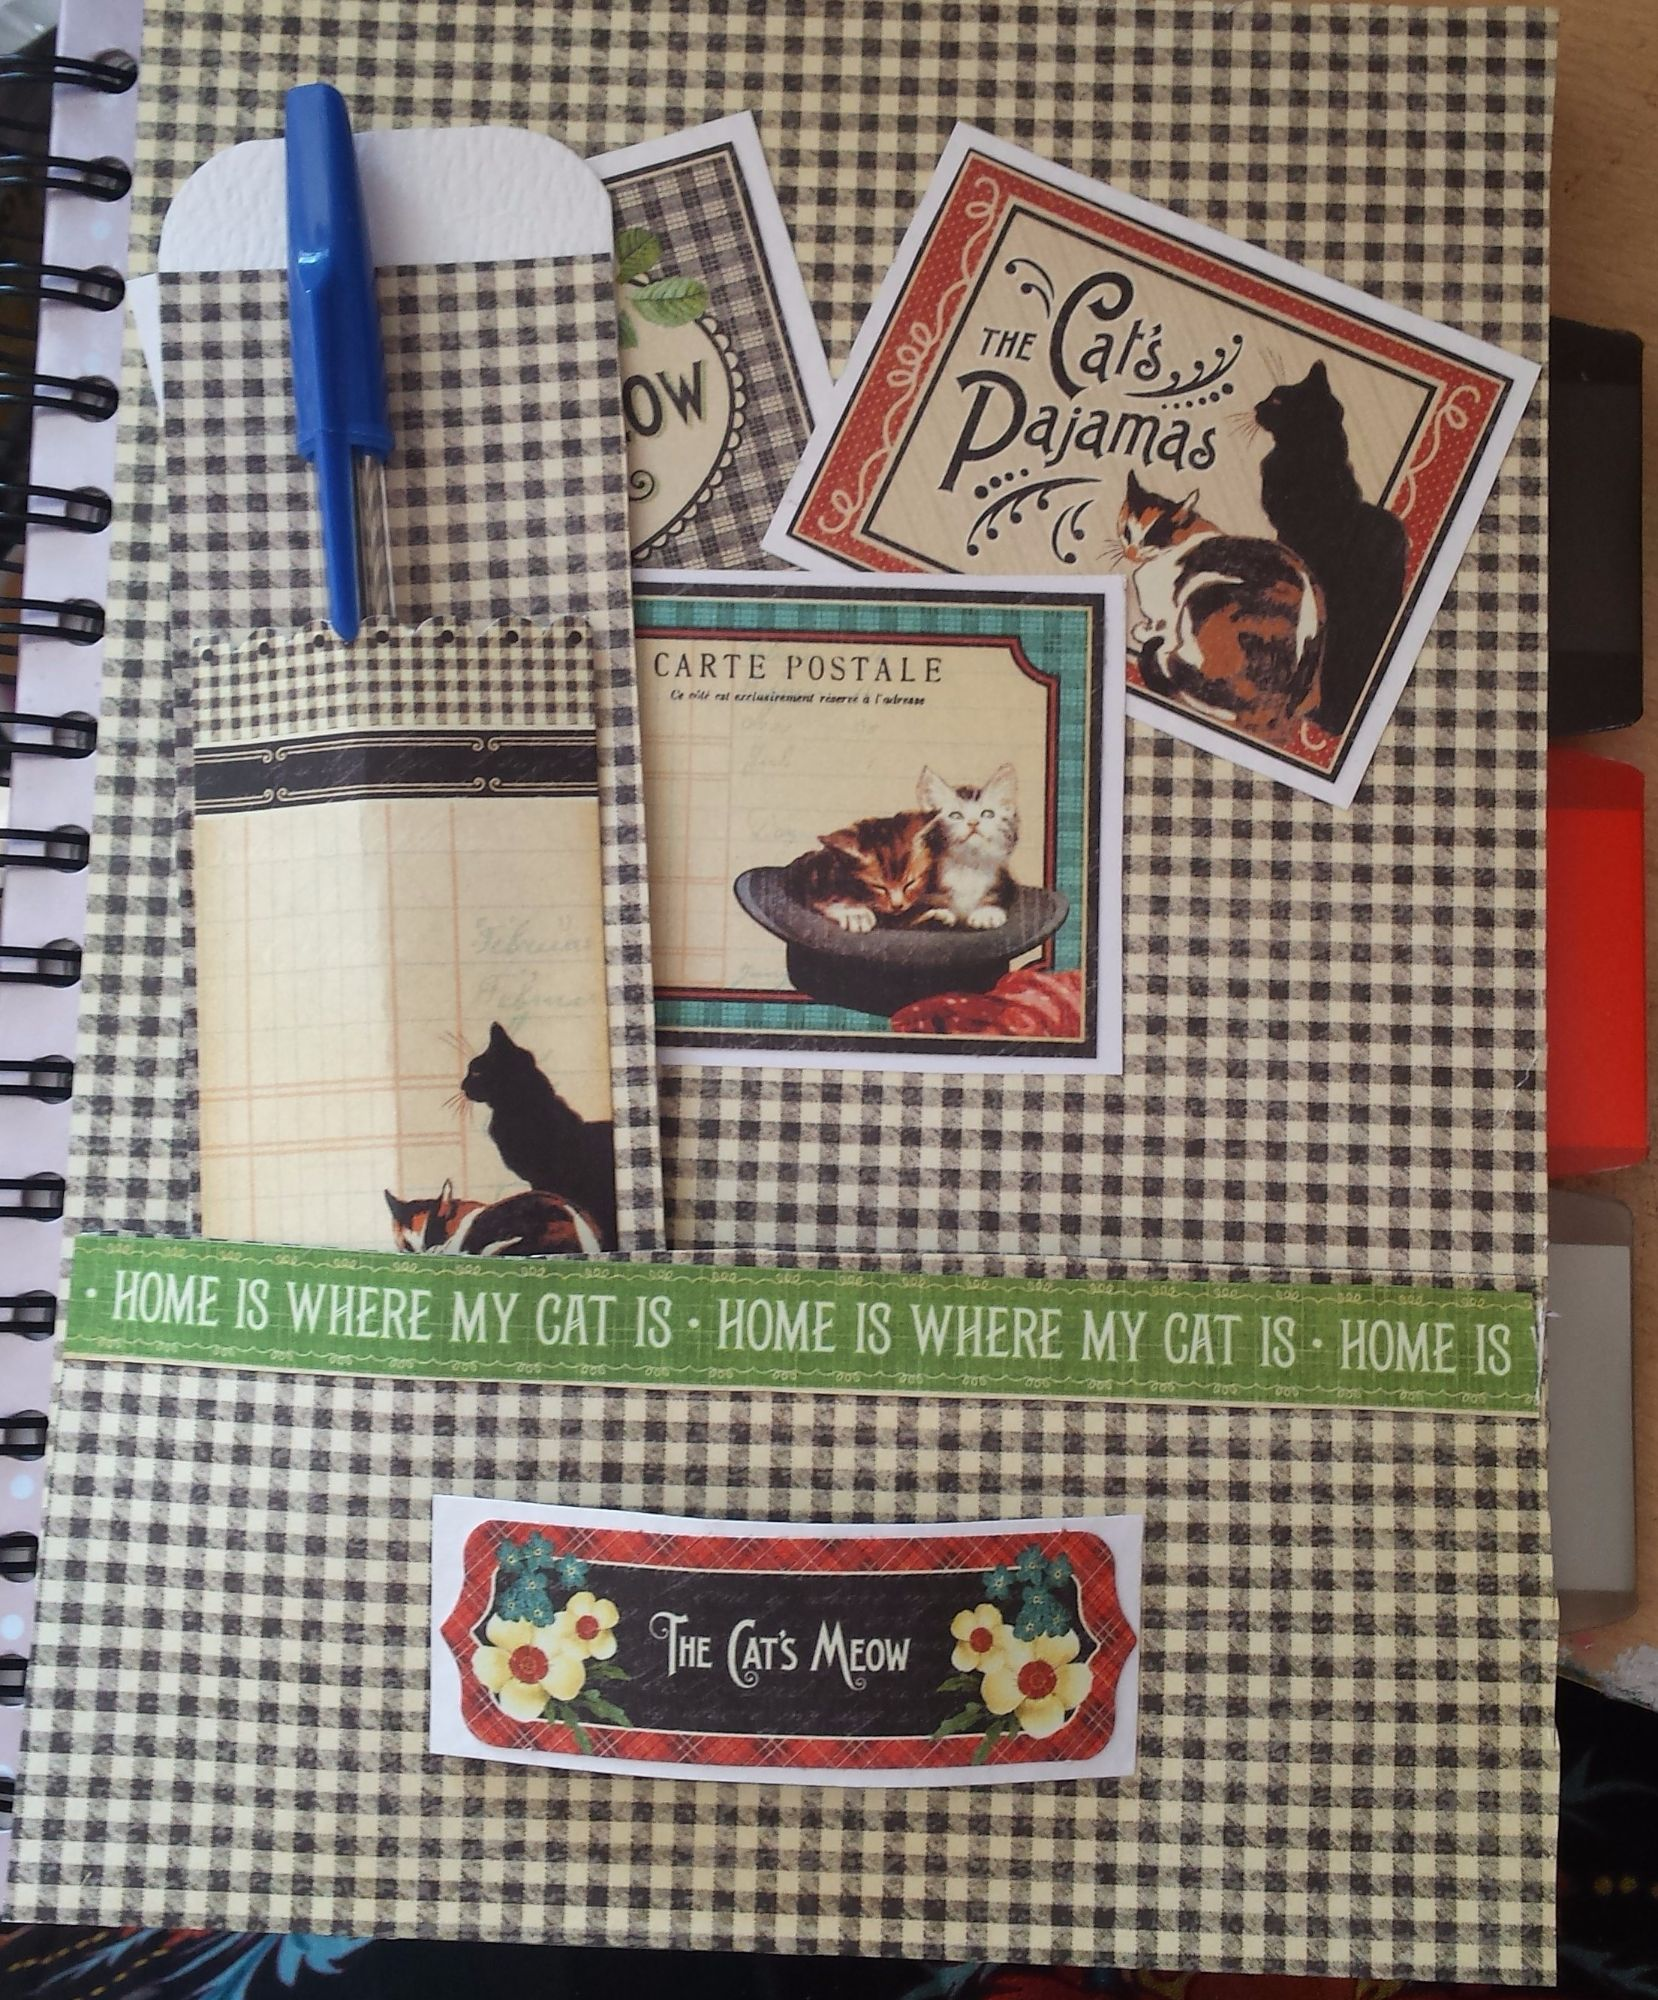 Raining Cats n Dogs - The Cat's Meow notebook, bookmark and pencil gift set